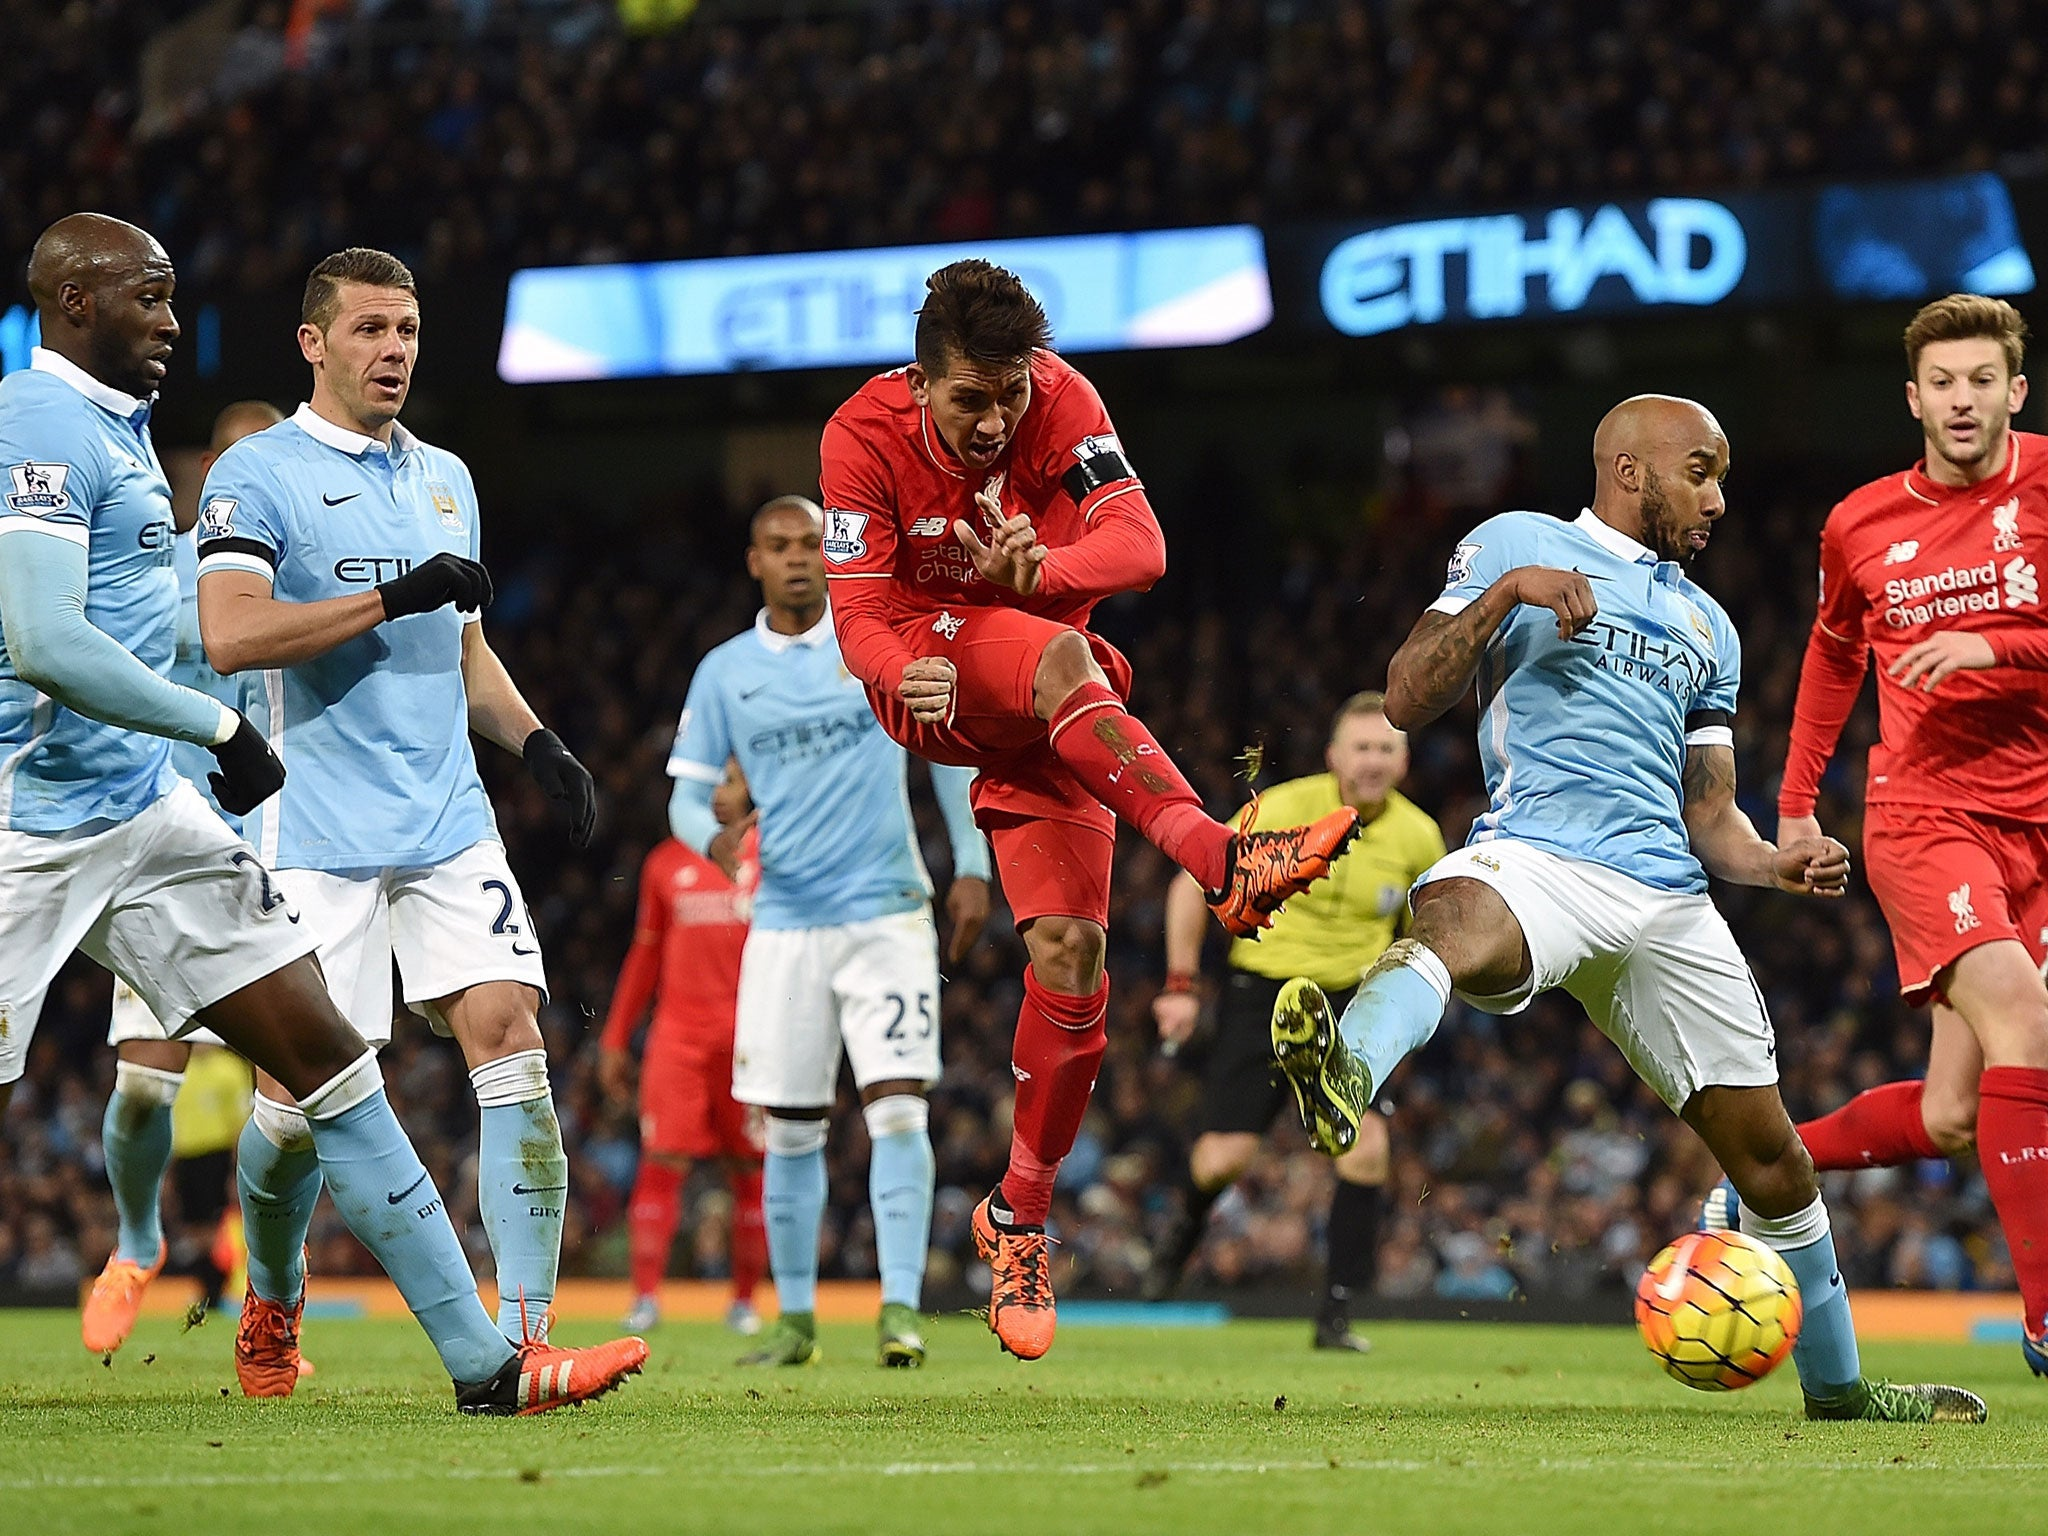 Image Result For Liverpool V Man City Penalties